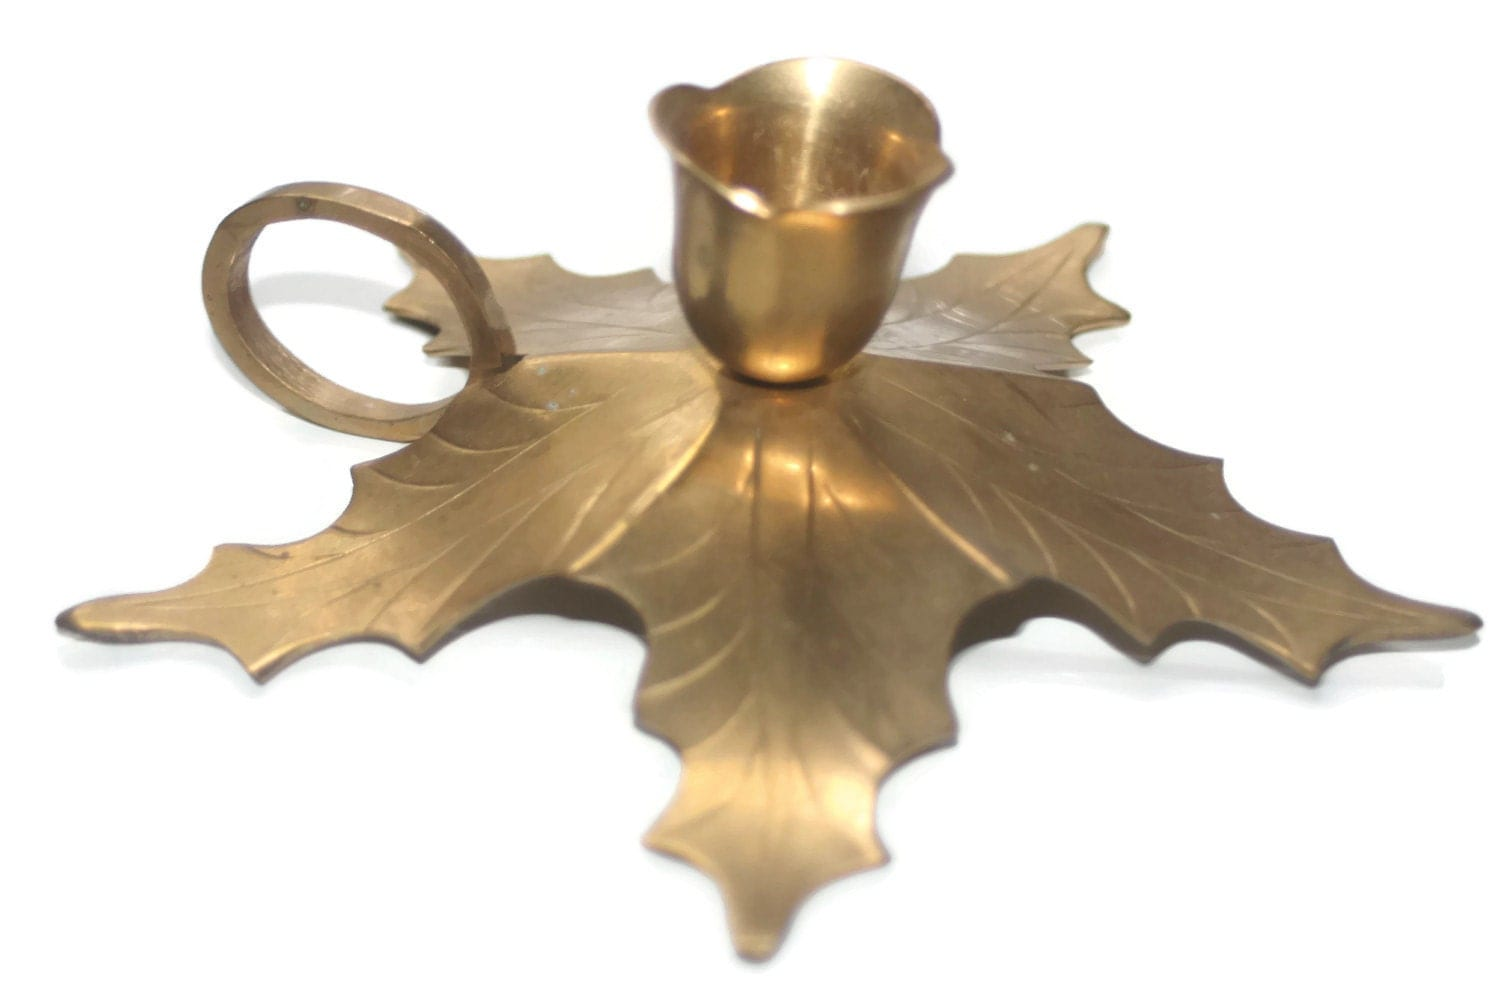 Brass Leaf Candle Holder Vintage Home Decor